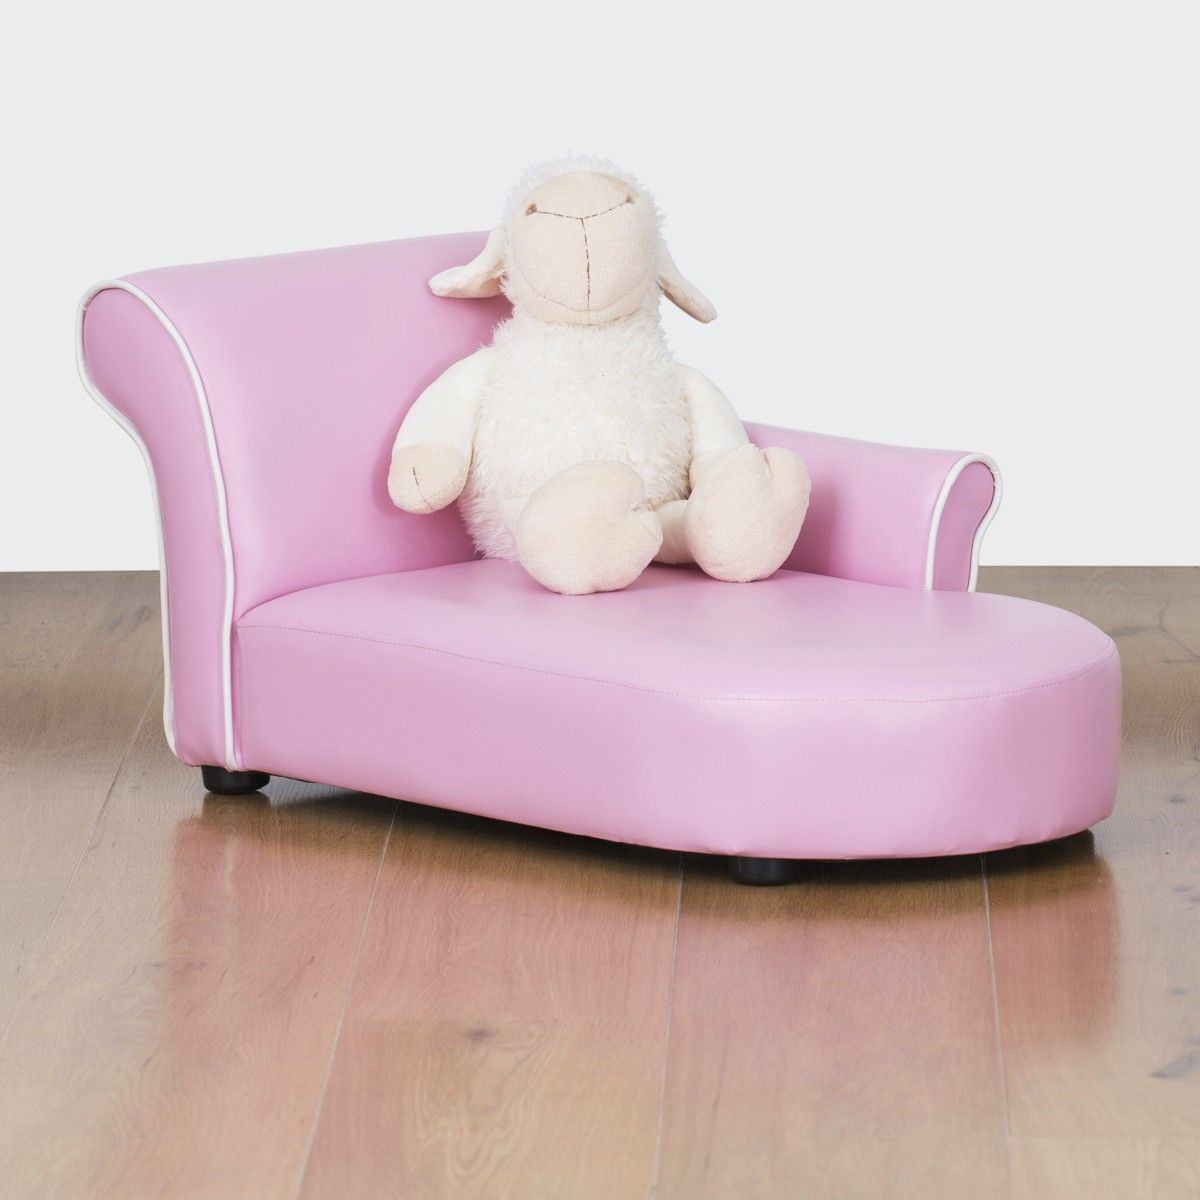 Bambina Kids Chaise Lounge Bubblegum Pink $129 00